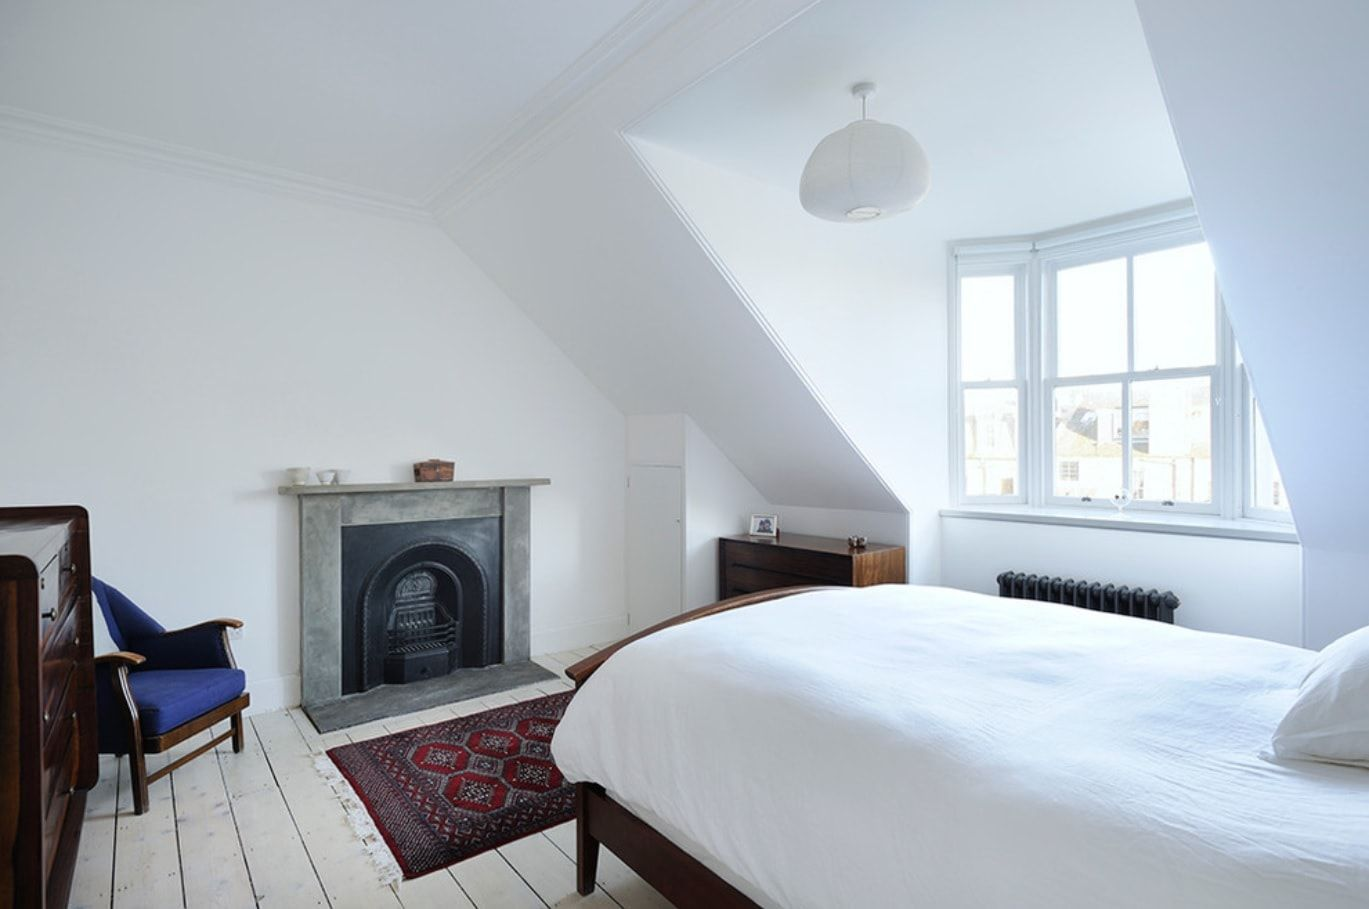 Bedroom at the attic with decorative fireplace